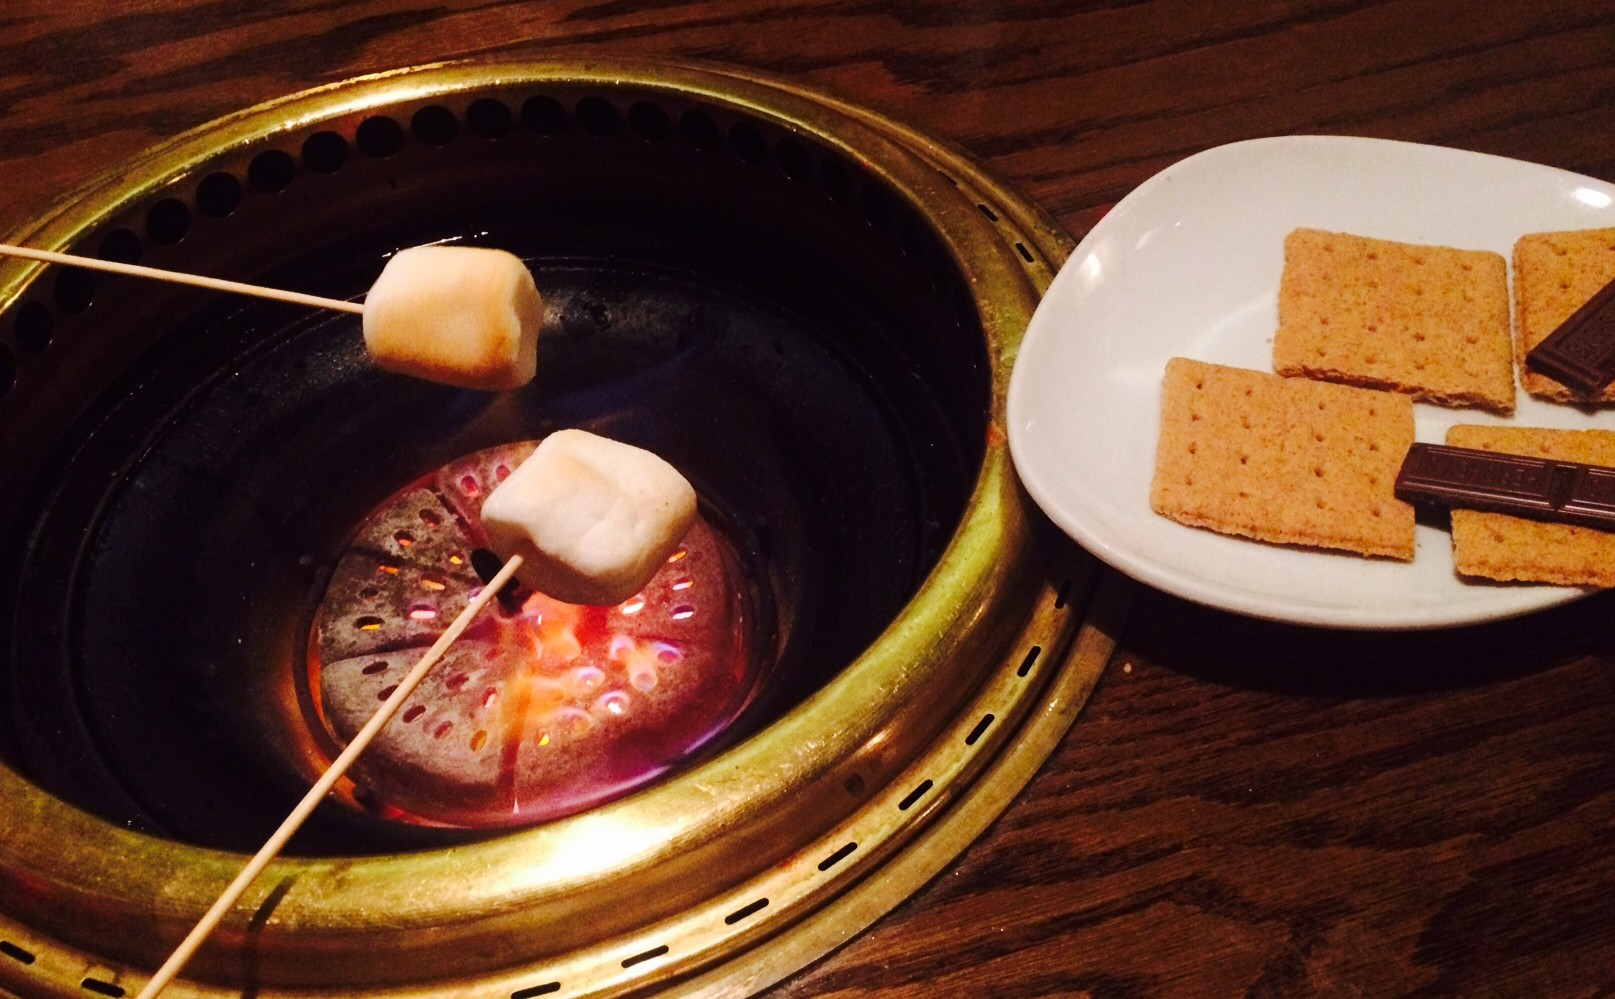 gyu-kaku-japanese-houston-marshmallow-dessert